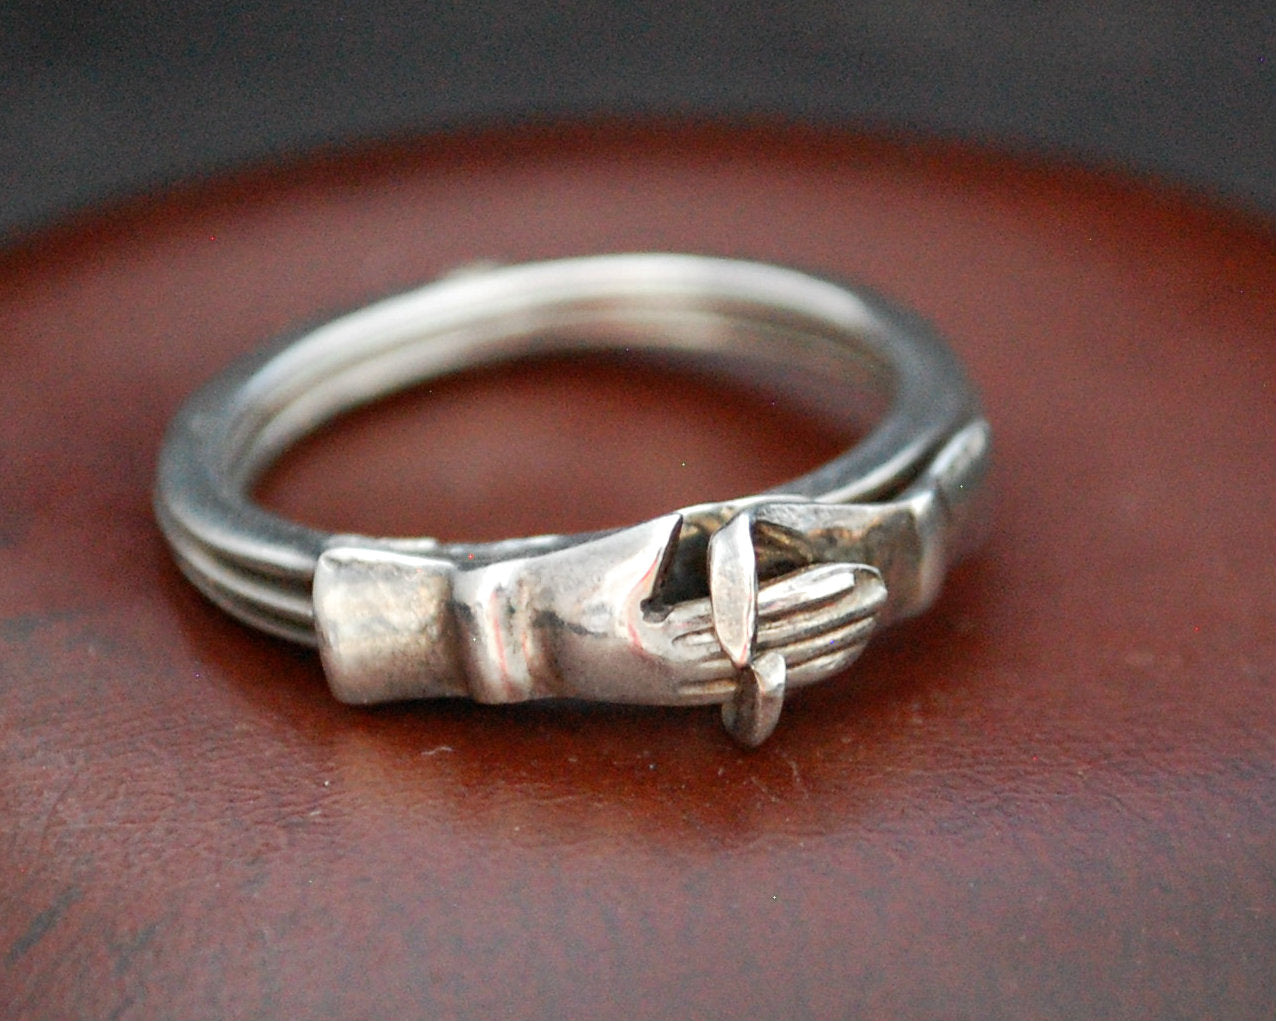 Vintage Berber Friendship Ring - Size 7